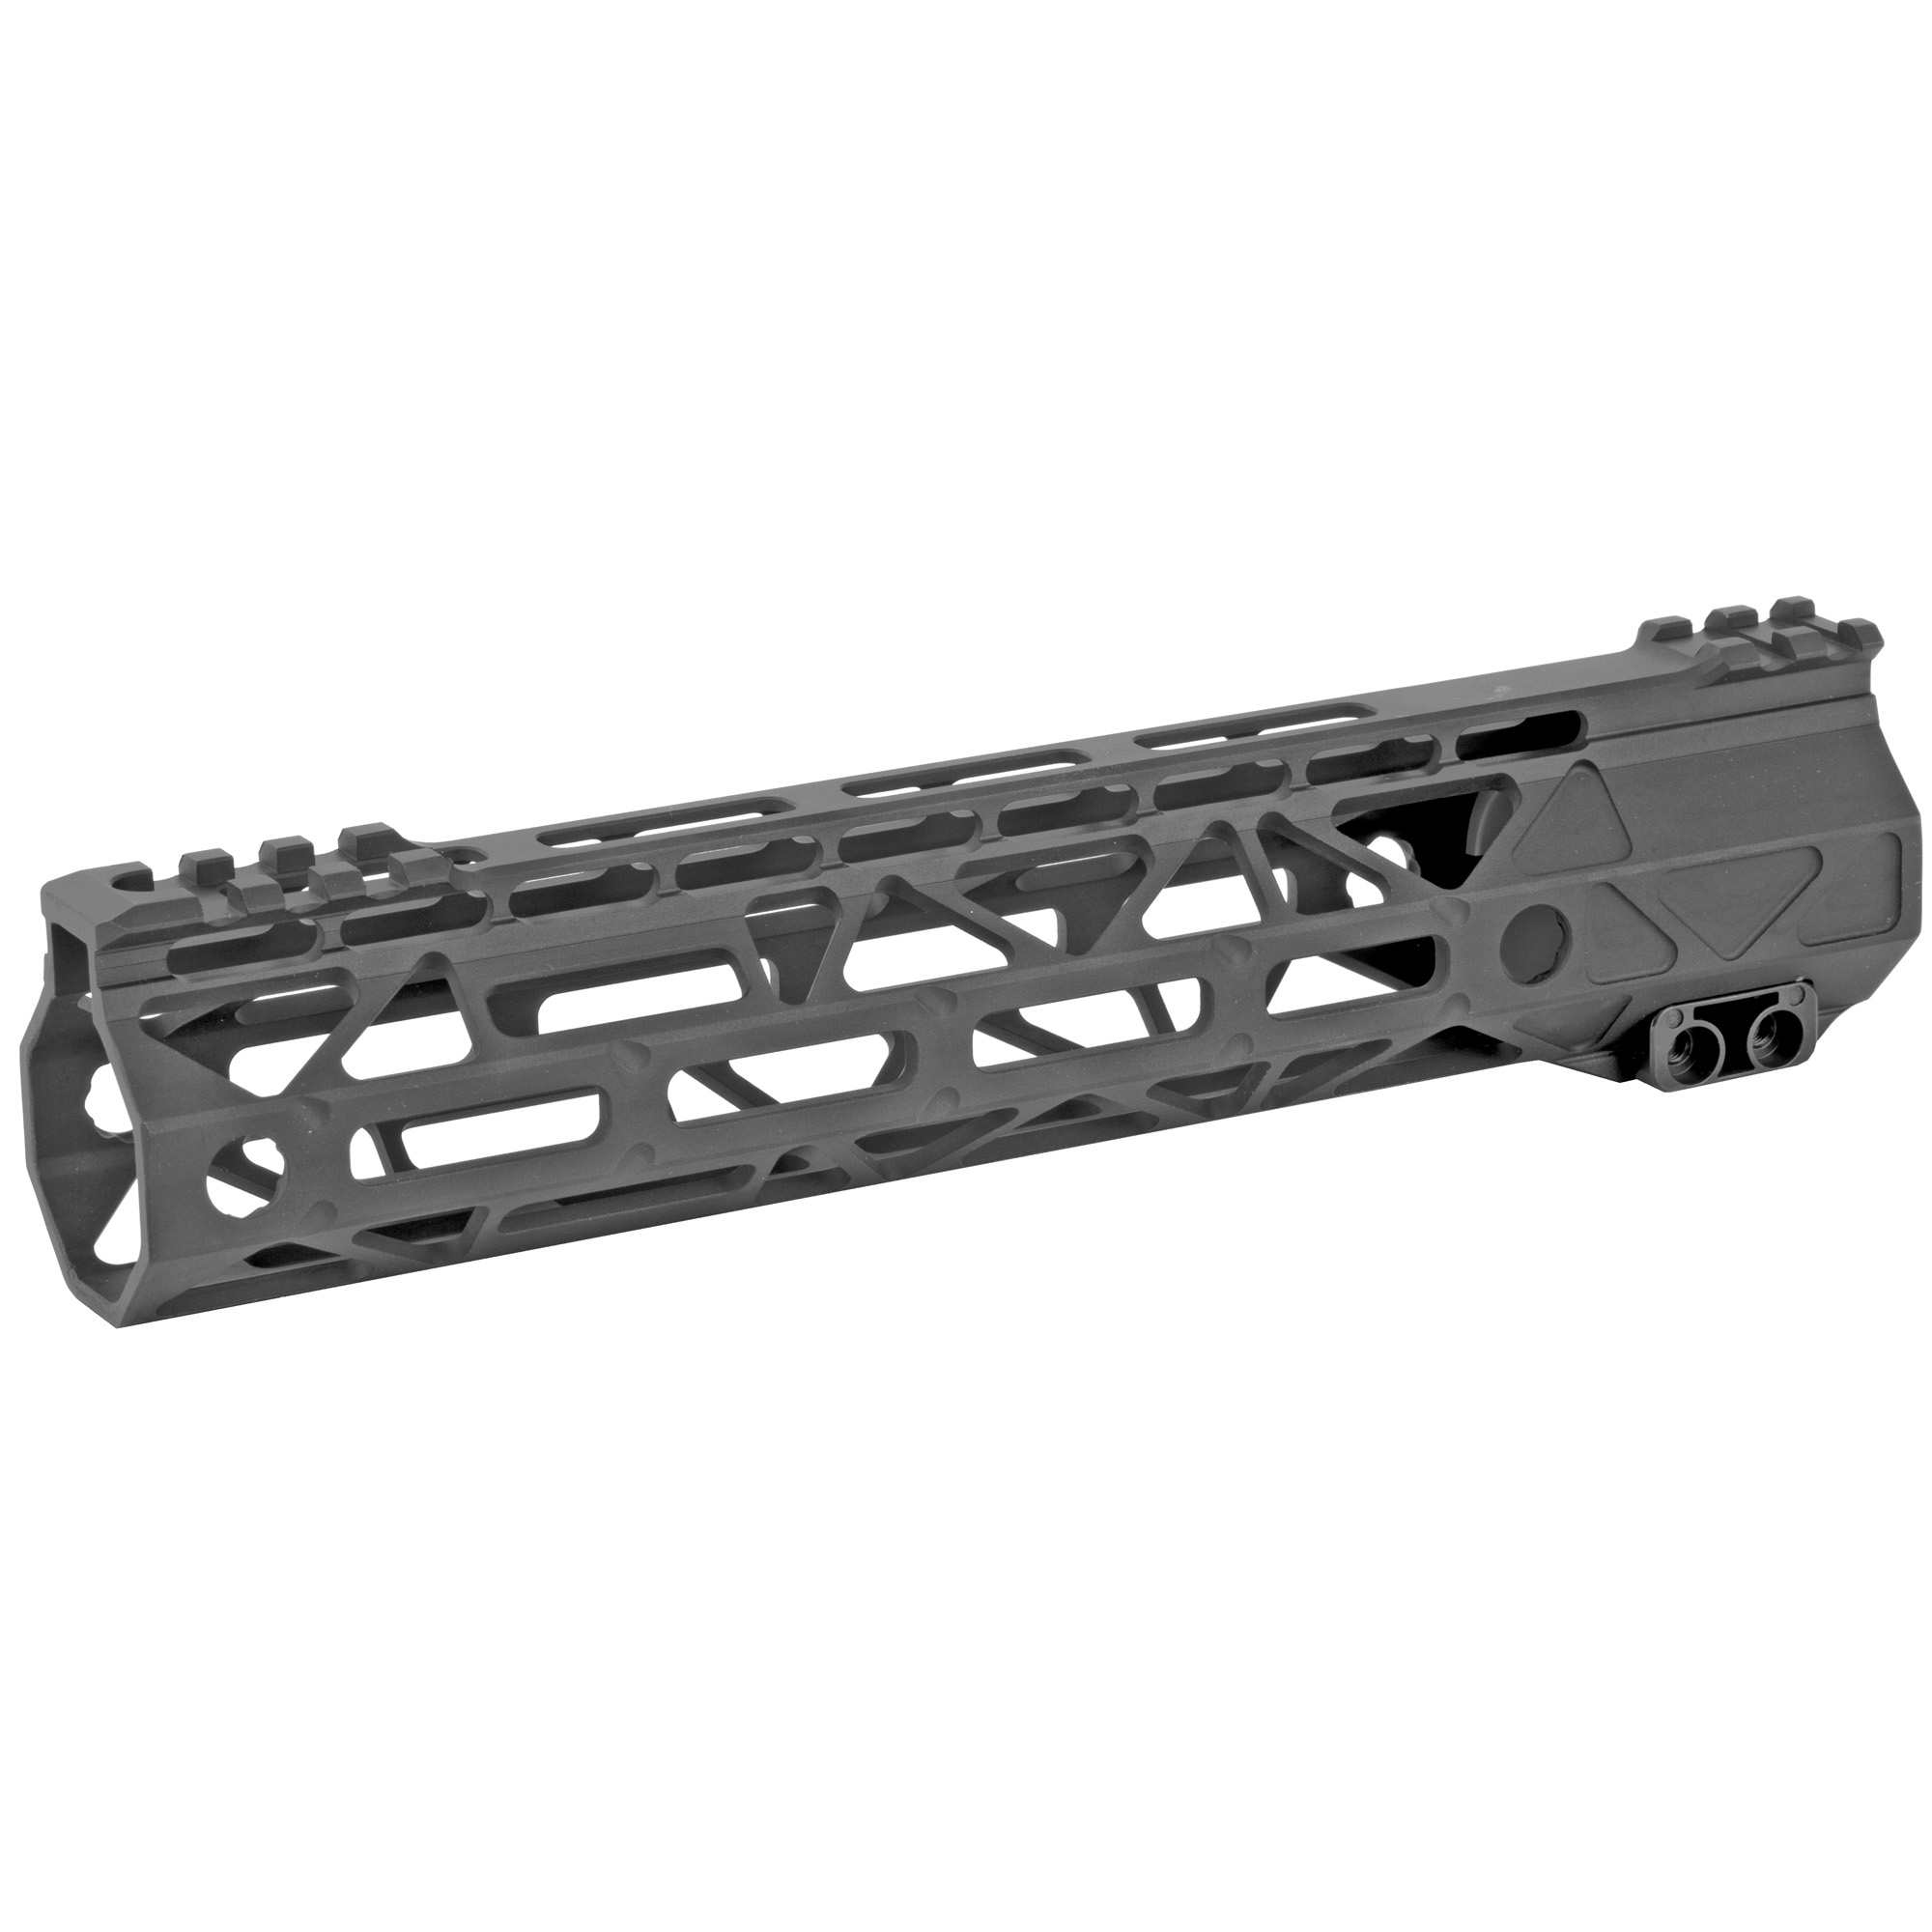 "The Battle Arms Development's Rigidrail 9.5"" M-Lok Handguard is designed to balance between light weight and strength/rigidity. The overall length is 9.5"" and the inner diameter is 1.315"". M-LOK Slots at 3"" 6"" 9"" and partial 12 o'clock positions"" and additional single M-Lock slots at four"" 45 degree positions"" for forward mounting light"" laser"" etc. It is compatible with AR-15 upper receivers and most low profile gas blocks."